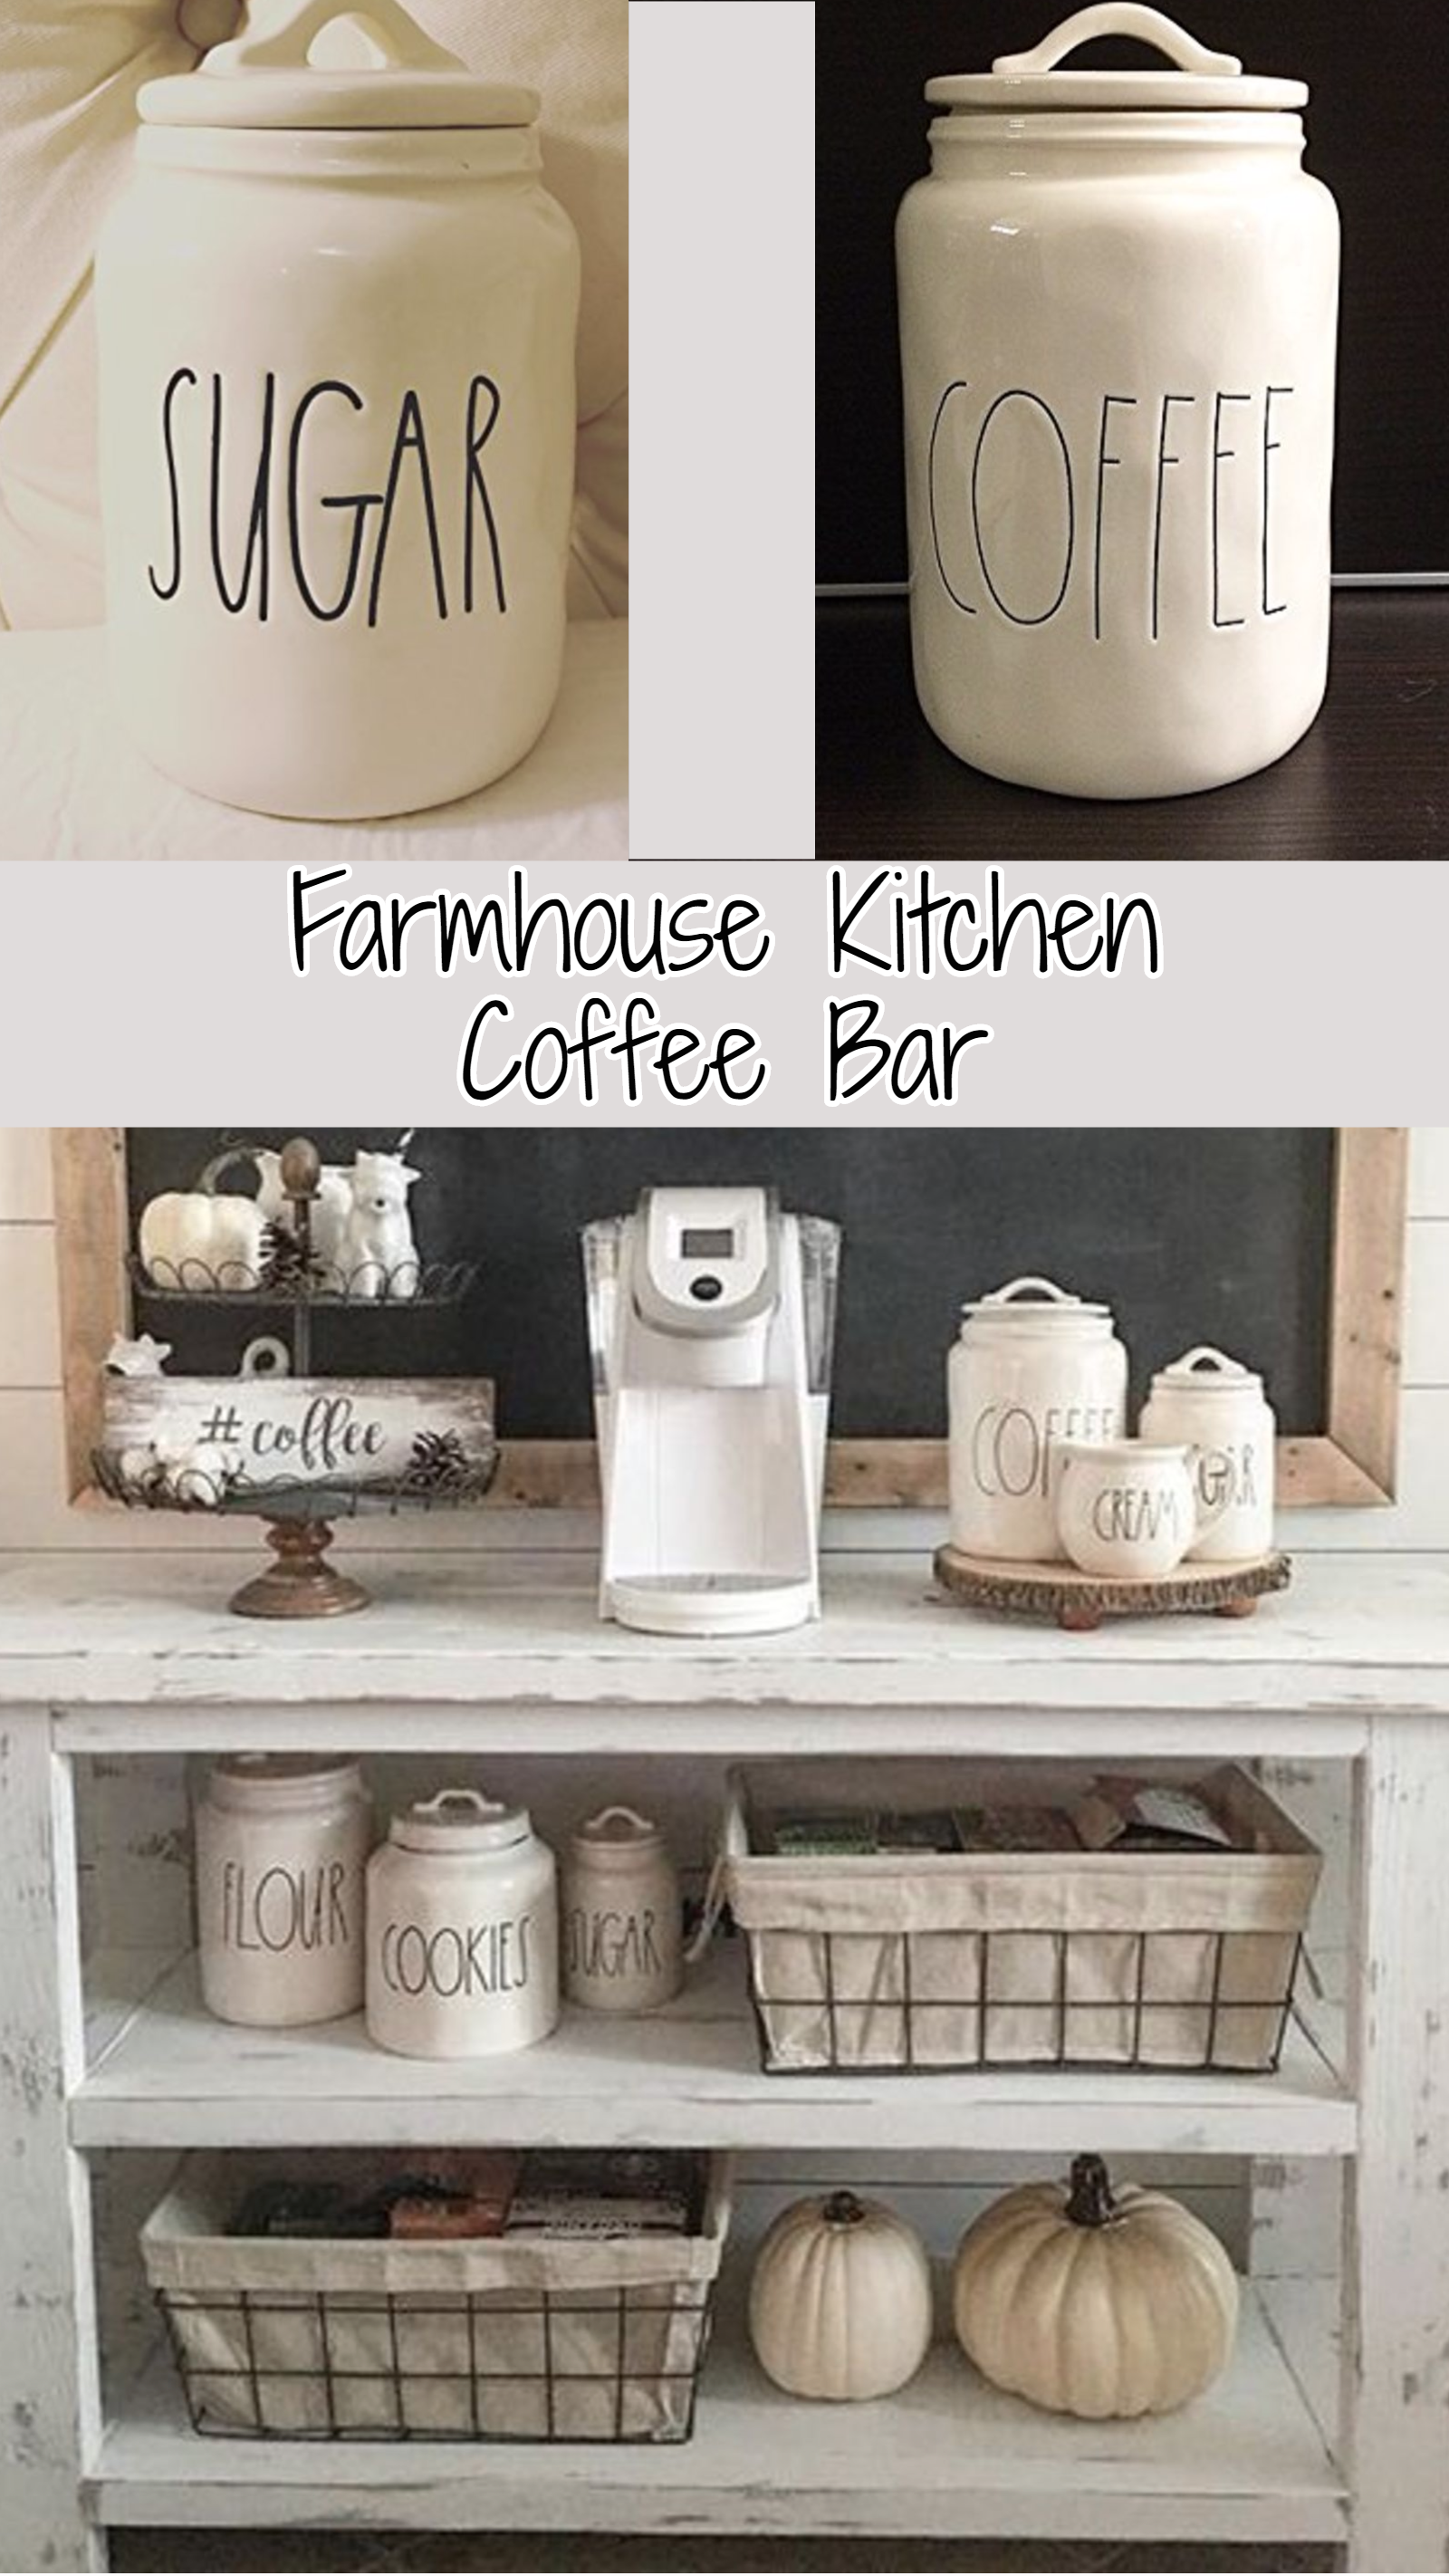 Farmhouse kitchen canister sets and farmhouse decor ideas kitchen